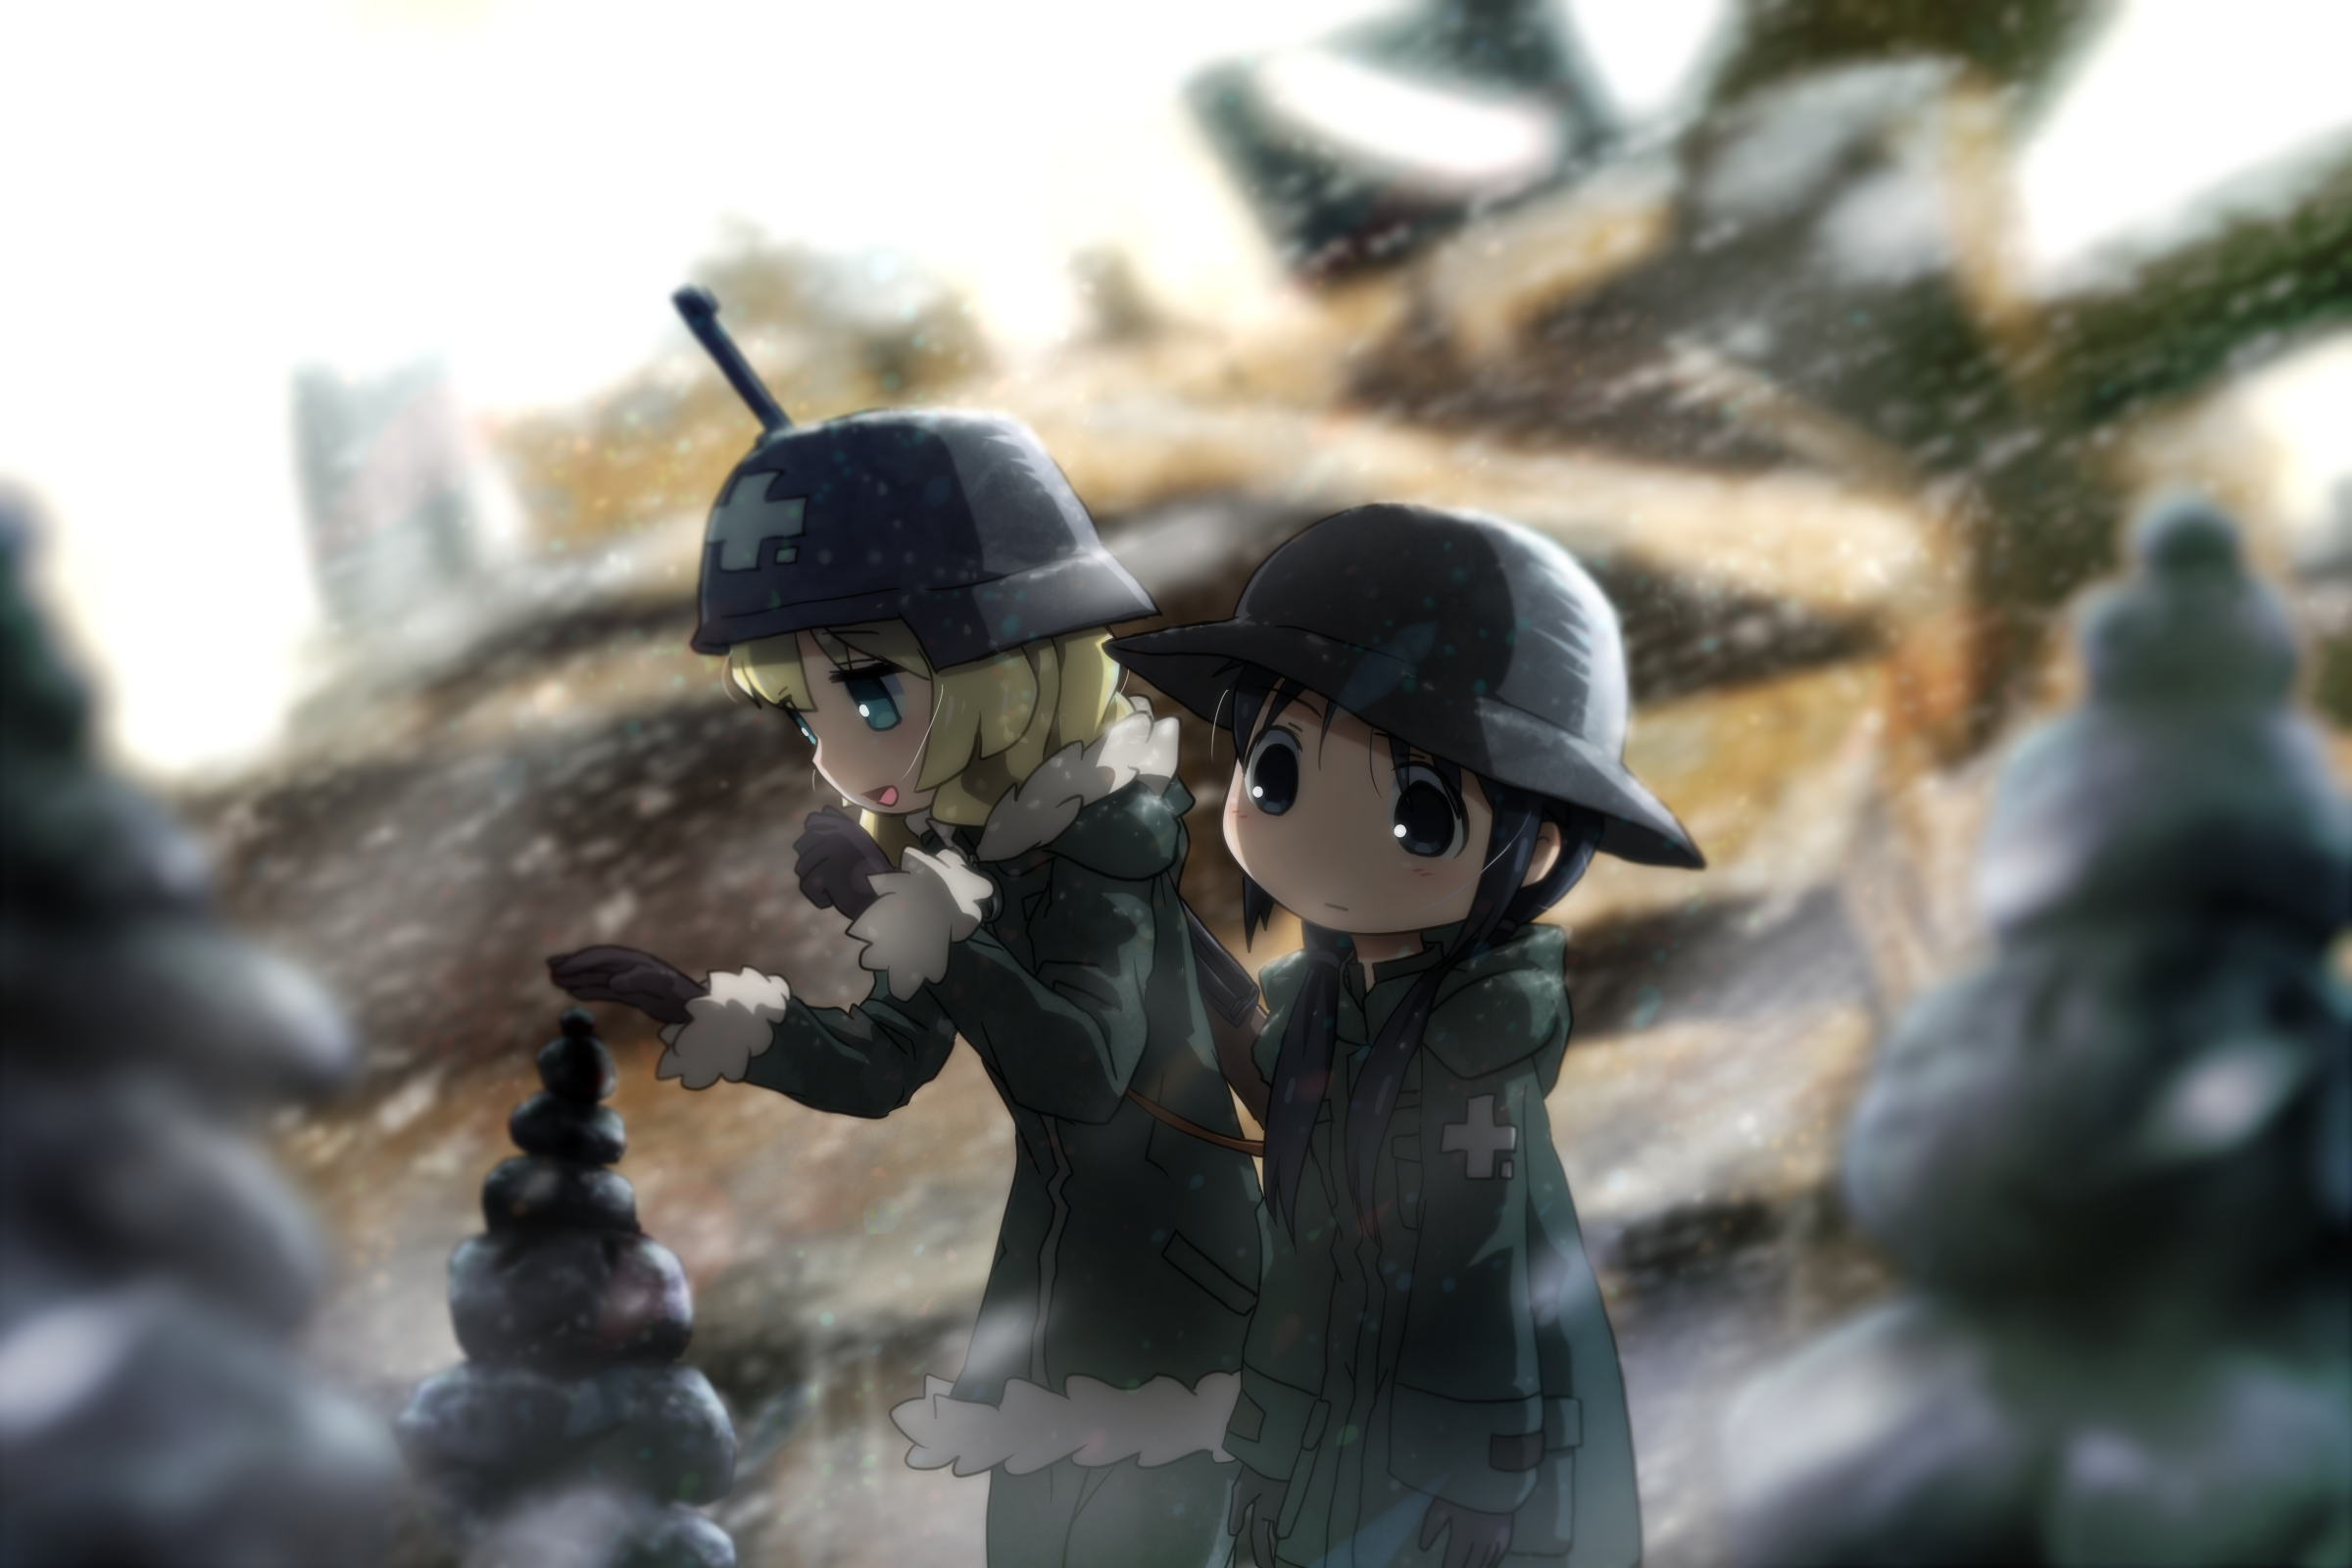 32 Girls Last Tour HD Wallpapers Background Images   Wallpaper 2400x1600